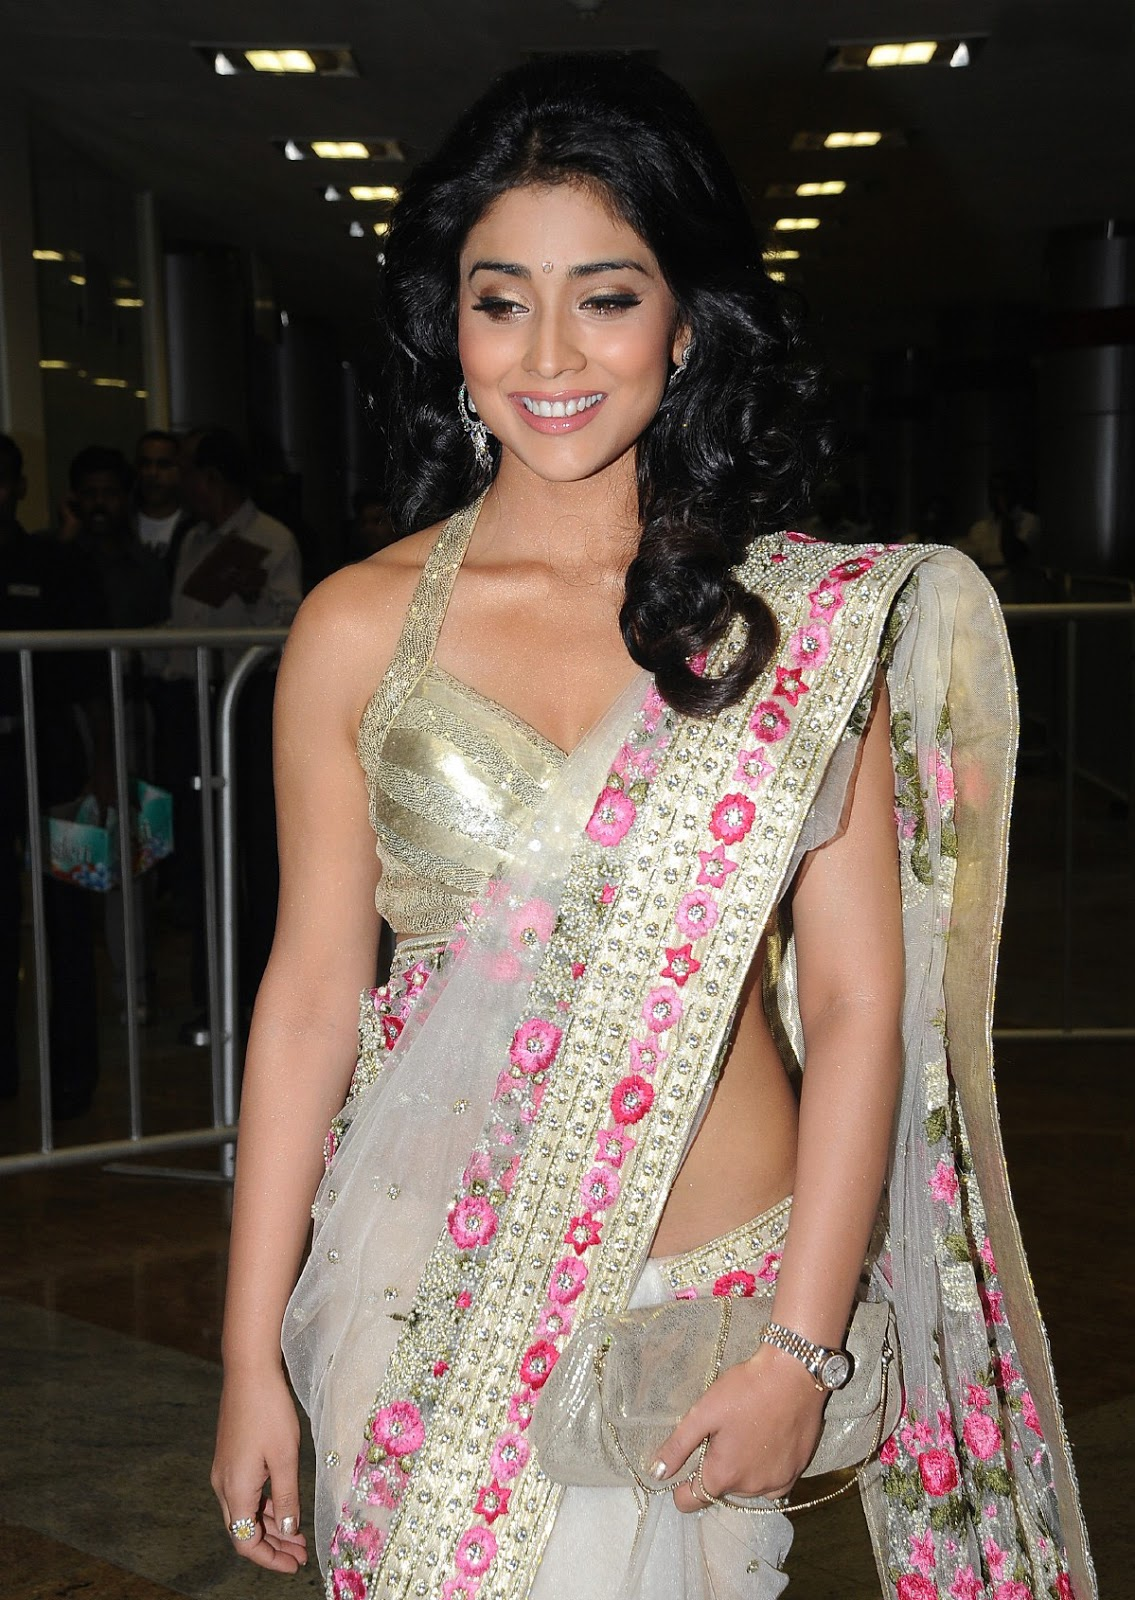 Shriya saran in a designer saree